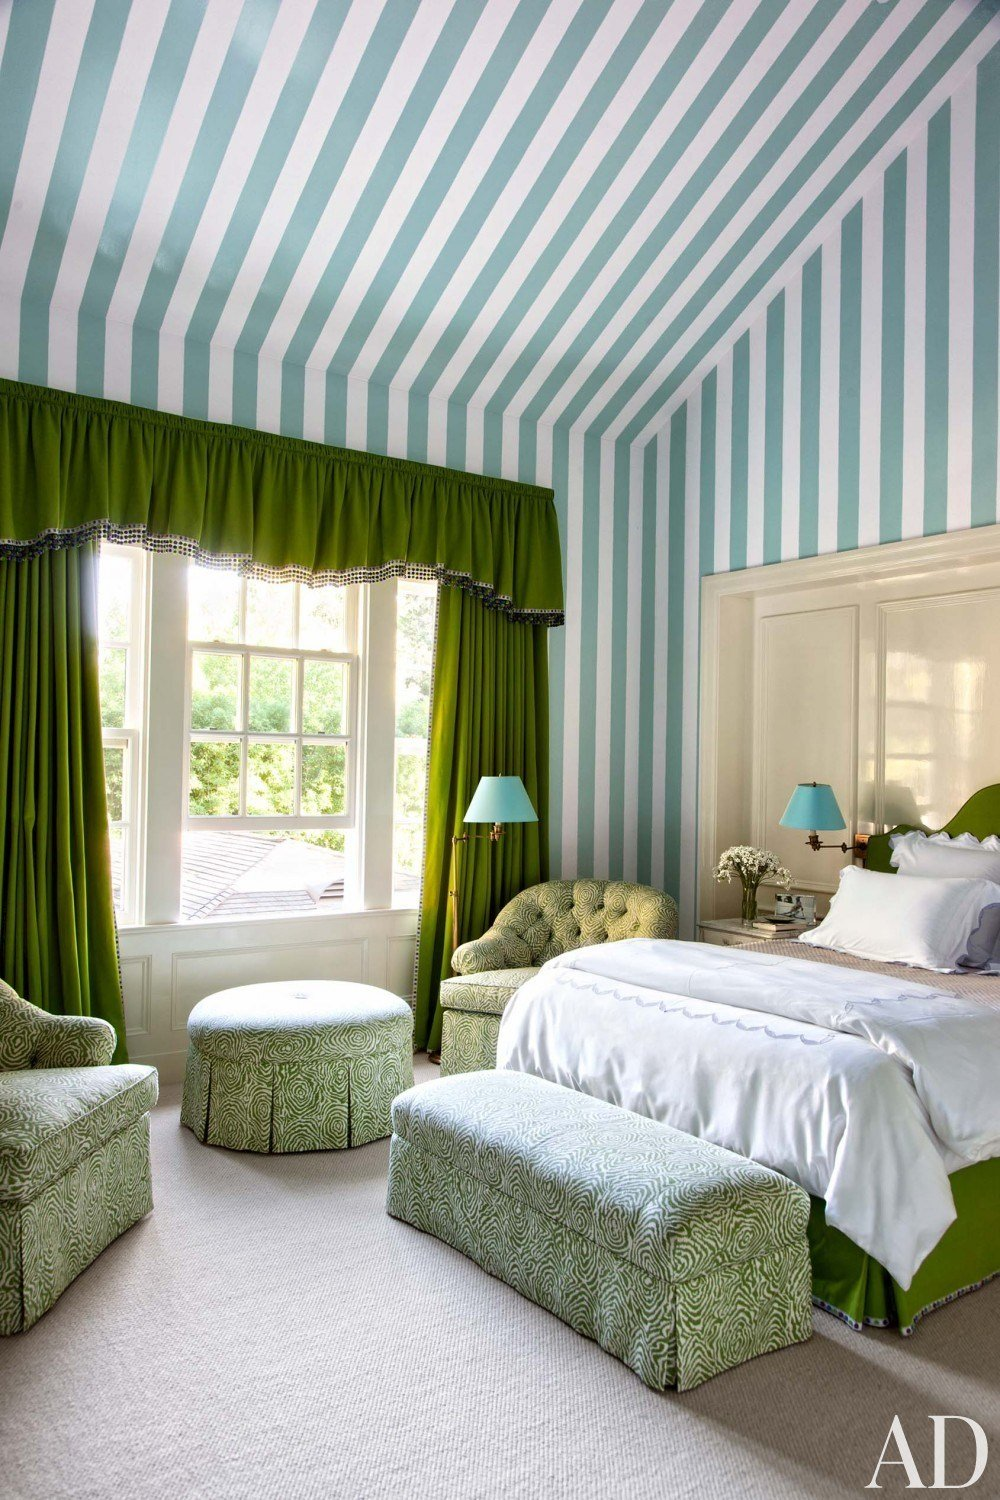 Best Blue White Green Striped Walls Wallpaper Country Style With Pictures